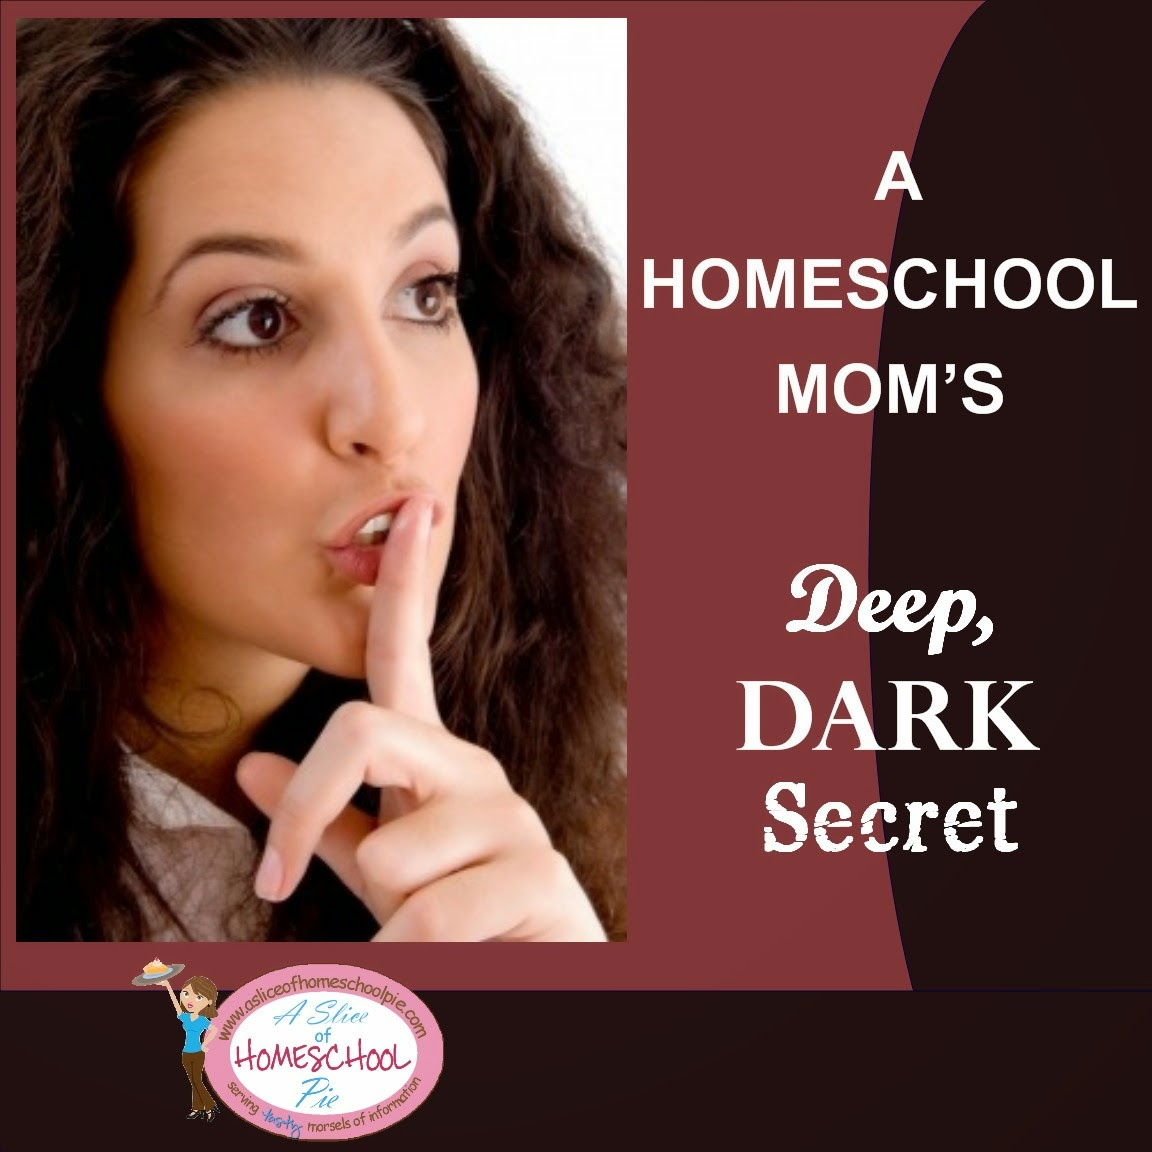 A Homeschool Mom's Deep, Dark Secret by ASliceOfHomeschoolPie.com